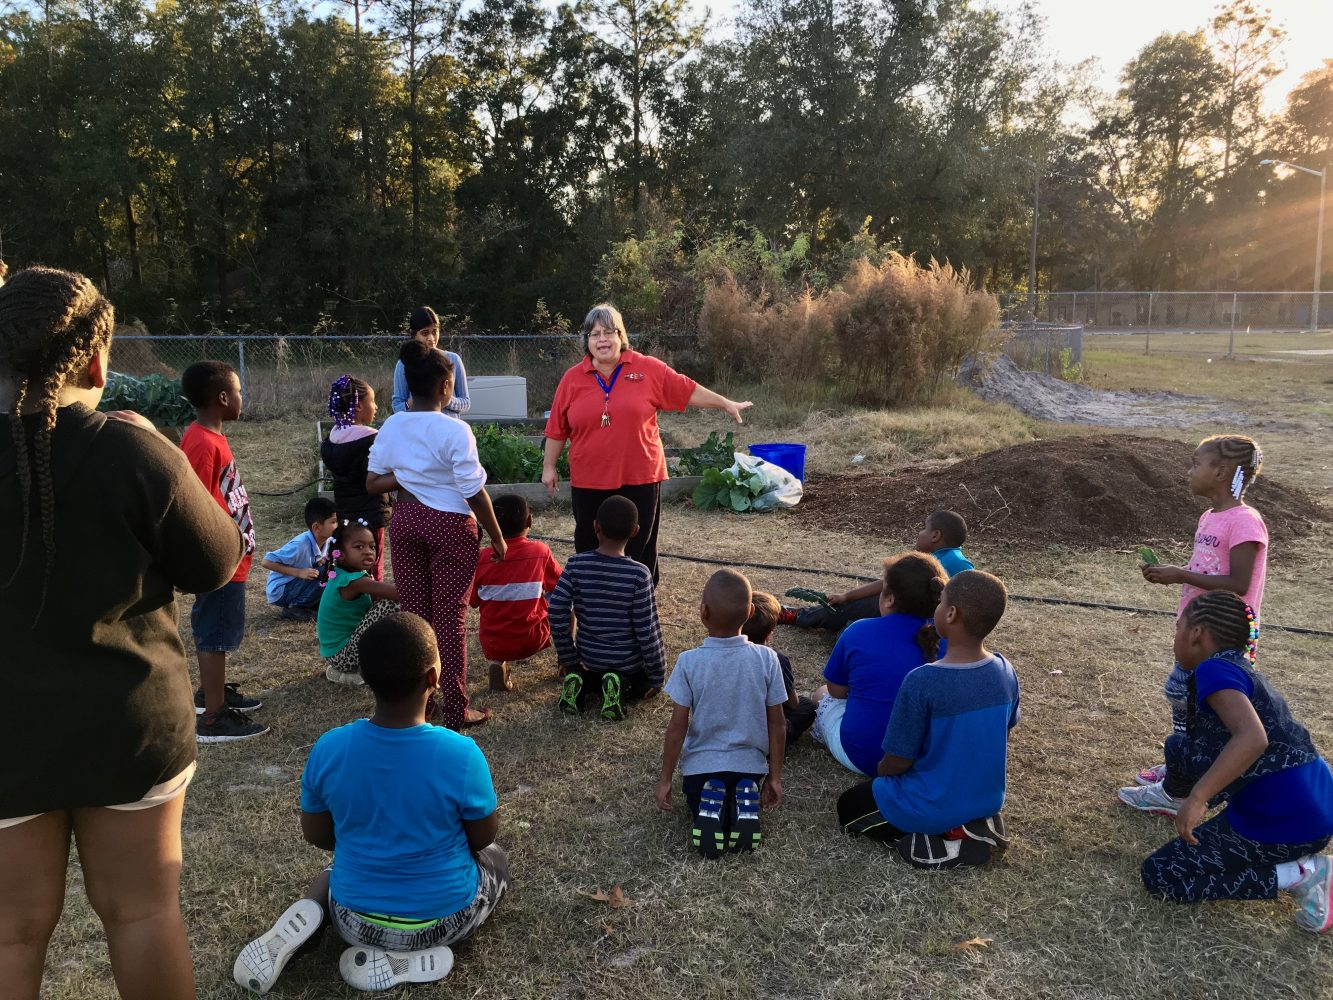 Students in Lake Forest Elementary School help harvest vegetables in the school garden as part of the Enriching Lake Forest afterschool program. Lake Forest Elementary School is a struggling school in Alachua County and community grants like the civic engagement grant from the Bob Graham Center for Public Service allow for programs like the school garden to exist.